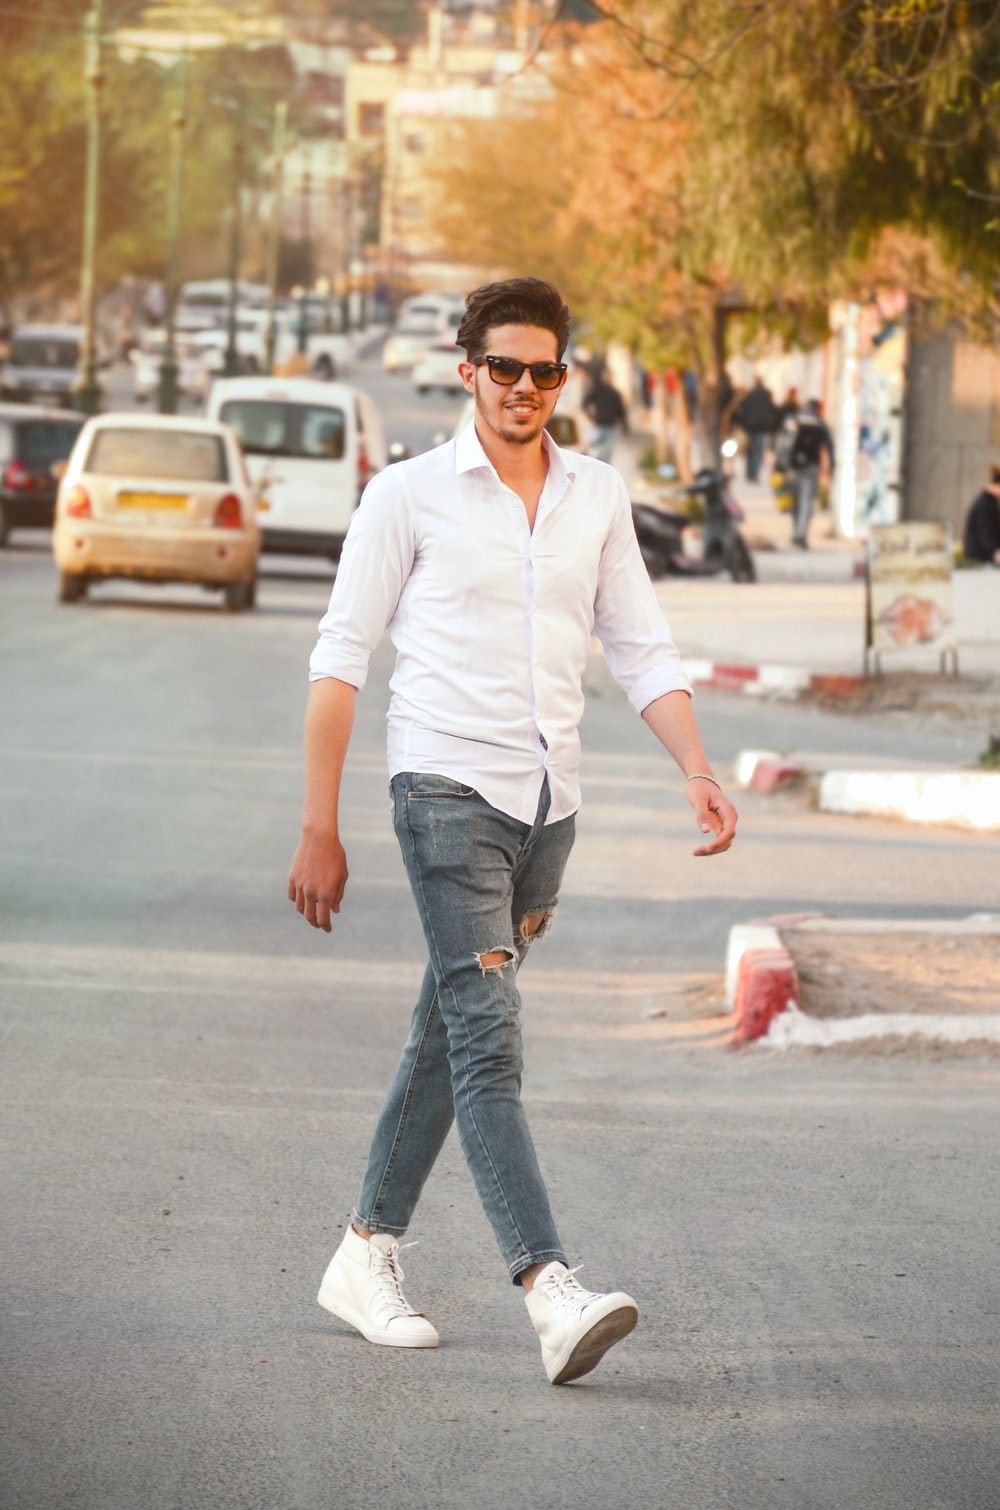 man wearing white dress shirt and distress blue jeans standing on road